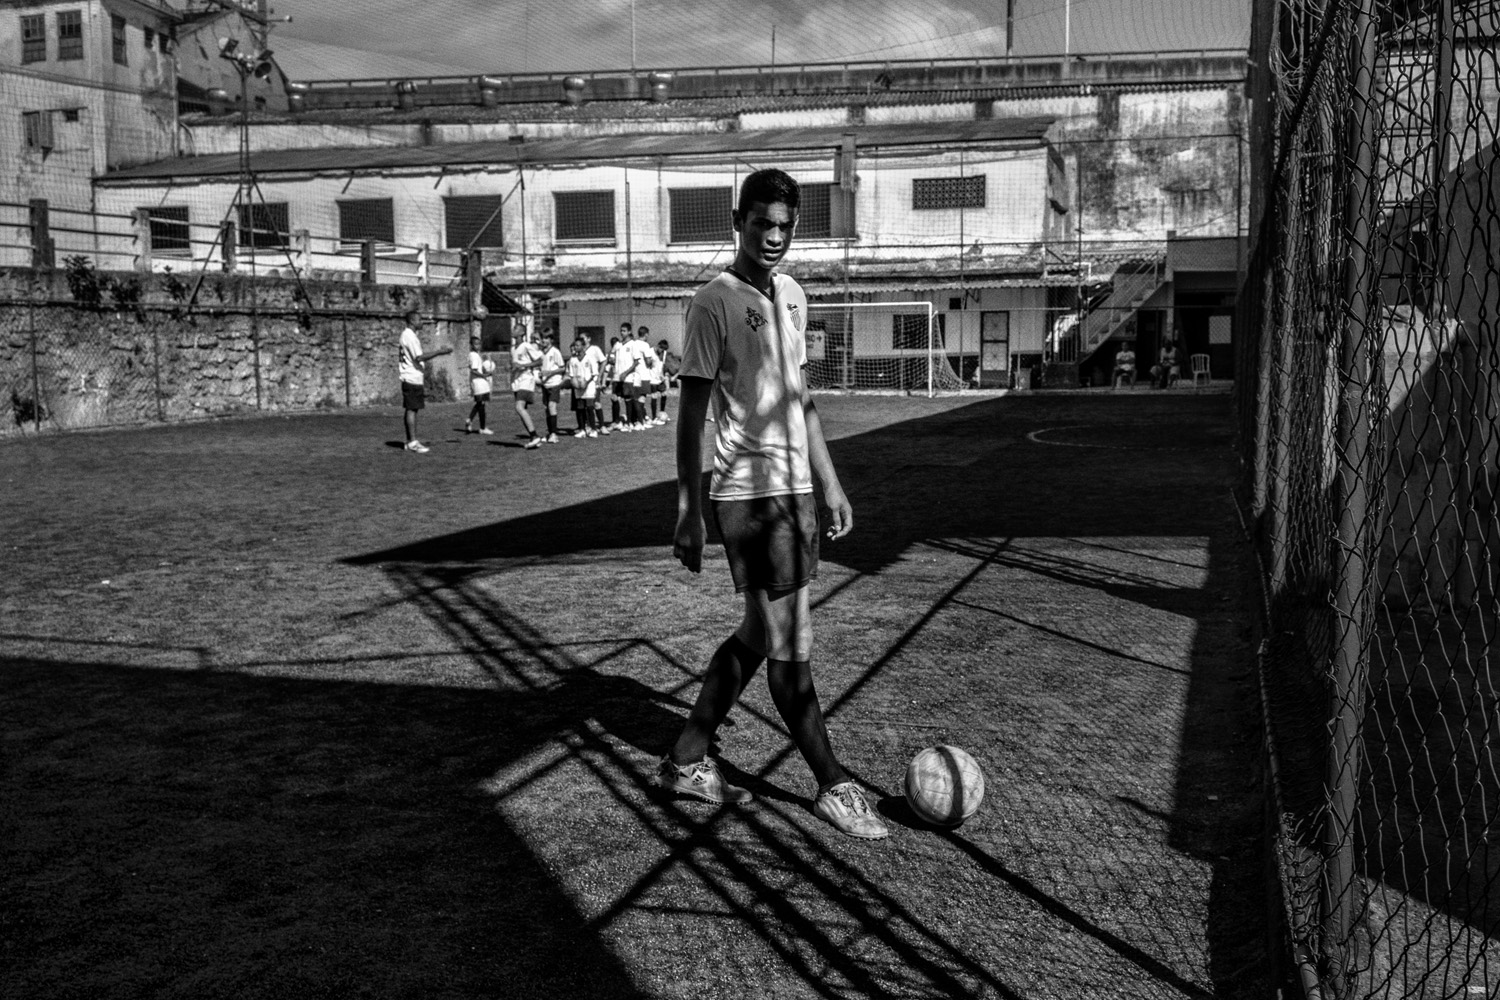 A player from the Sao Cristovao soccer team is seen in Rio de Janeiro. The team is an important school for young footballers.